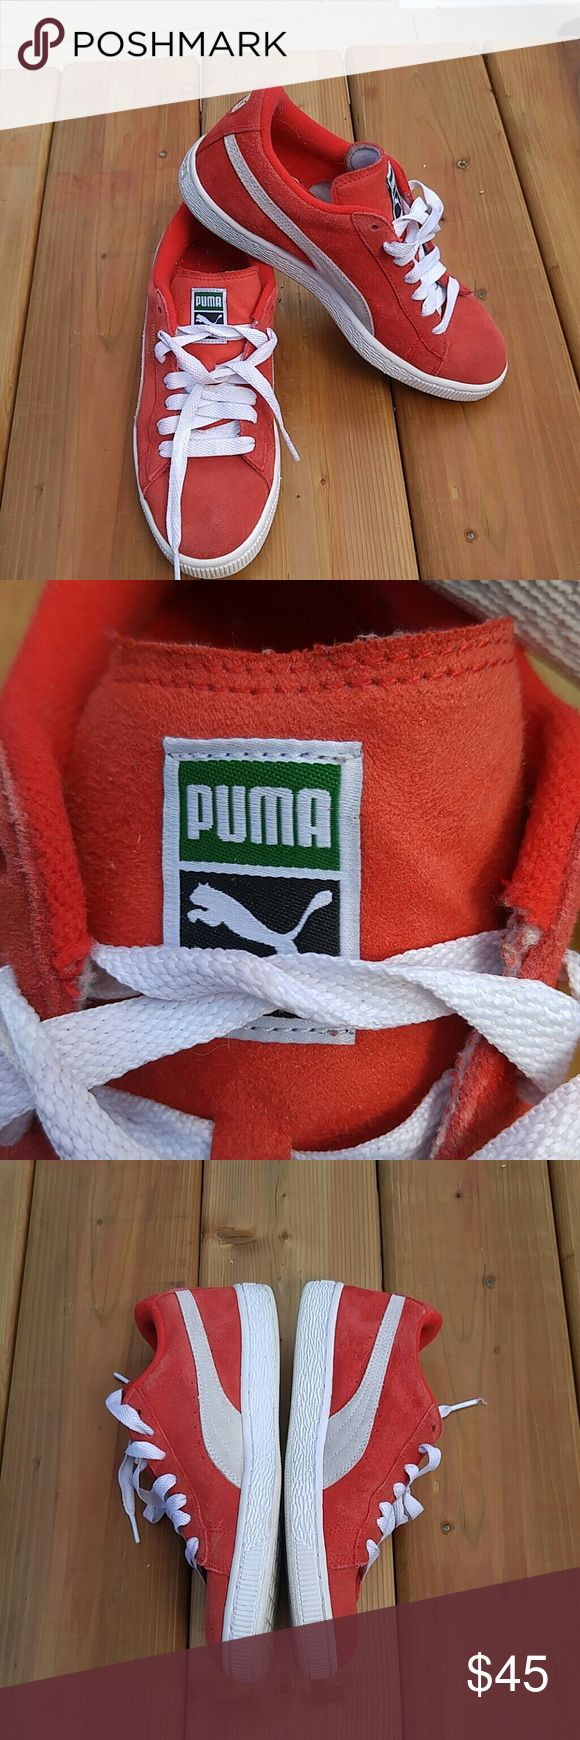 1 HOUR SALE RED PUMA SNEAKERS Red suede and PUMA sneakers with white accents. Gorgeous and not your typical pair of sneakers. Make a statement. Be unique Puma Shoes Sneakers